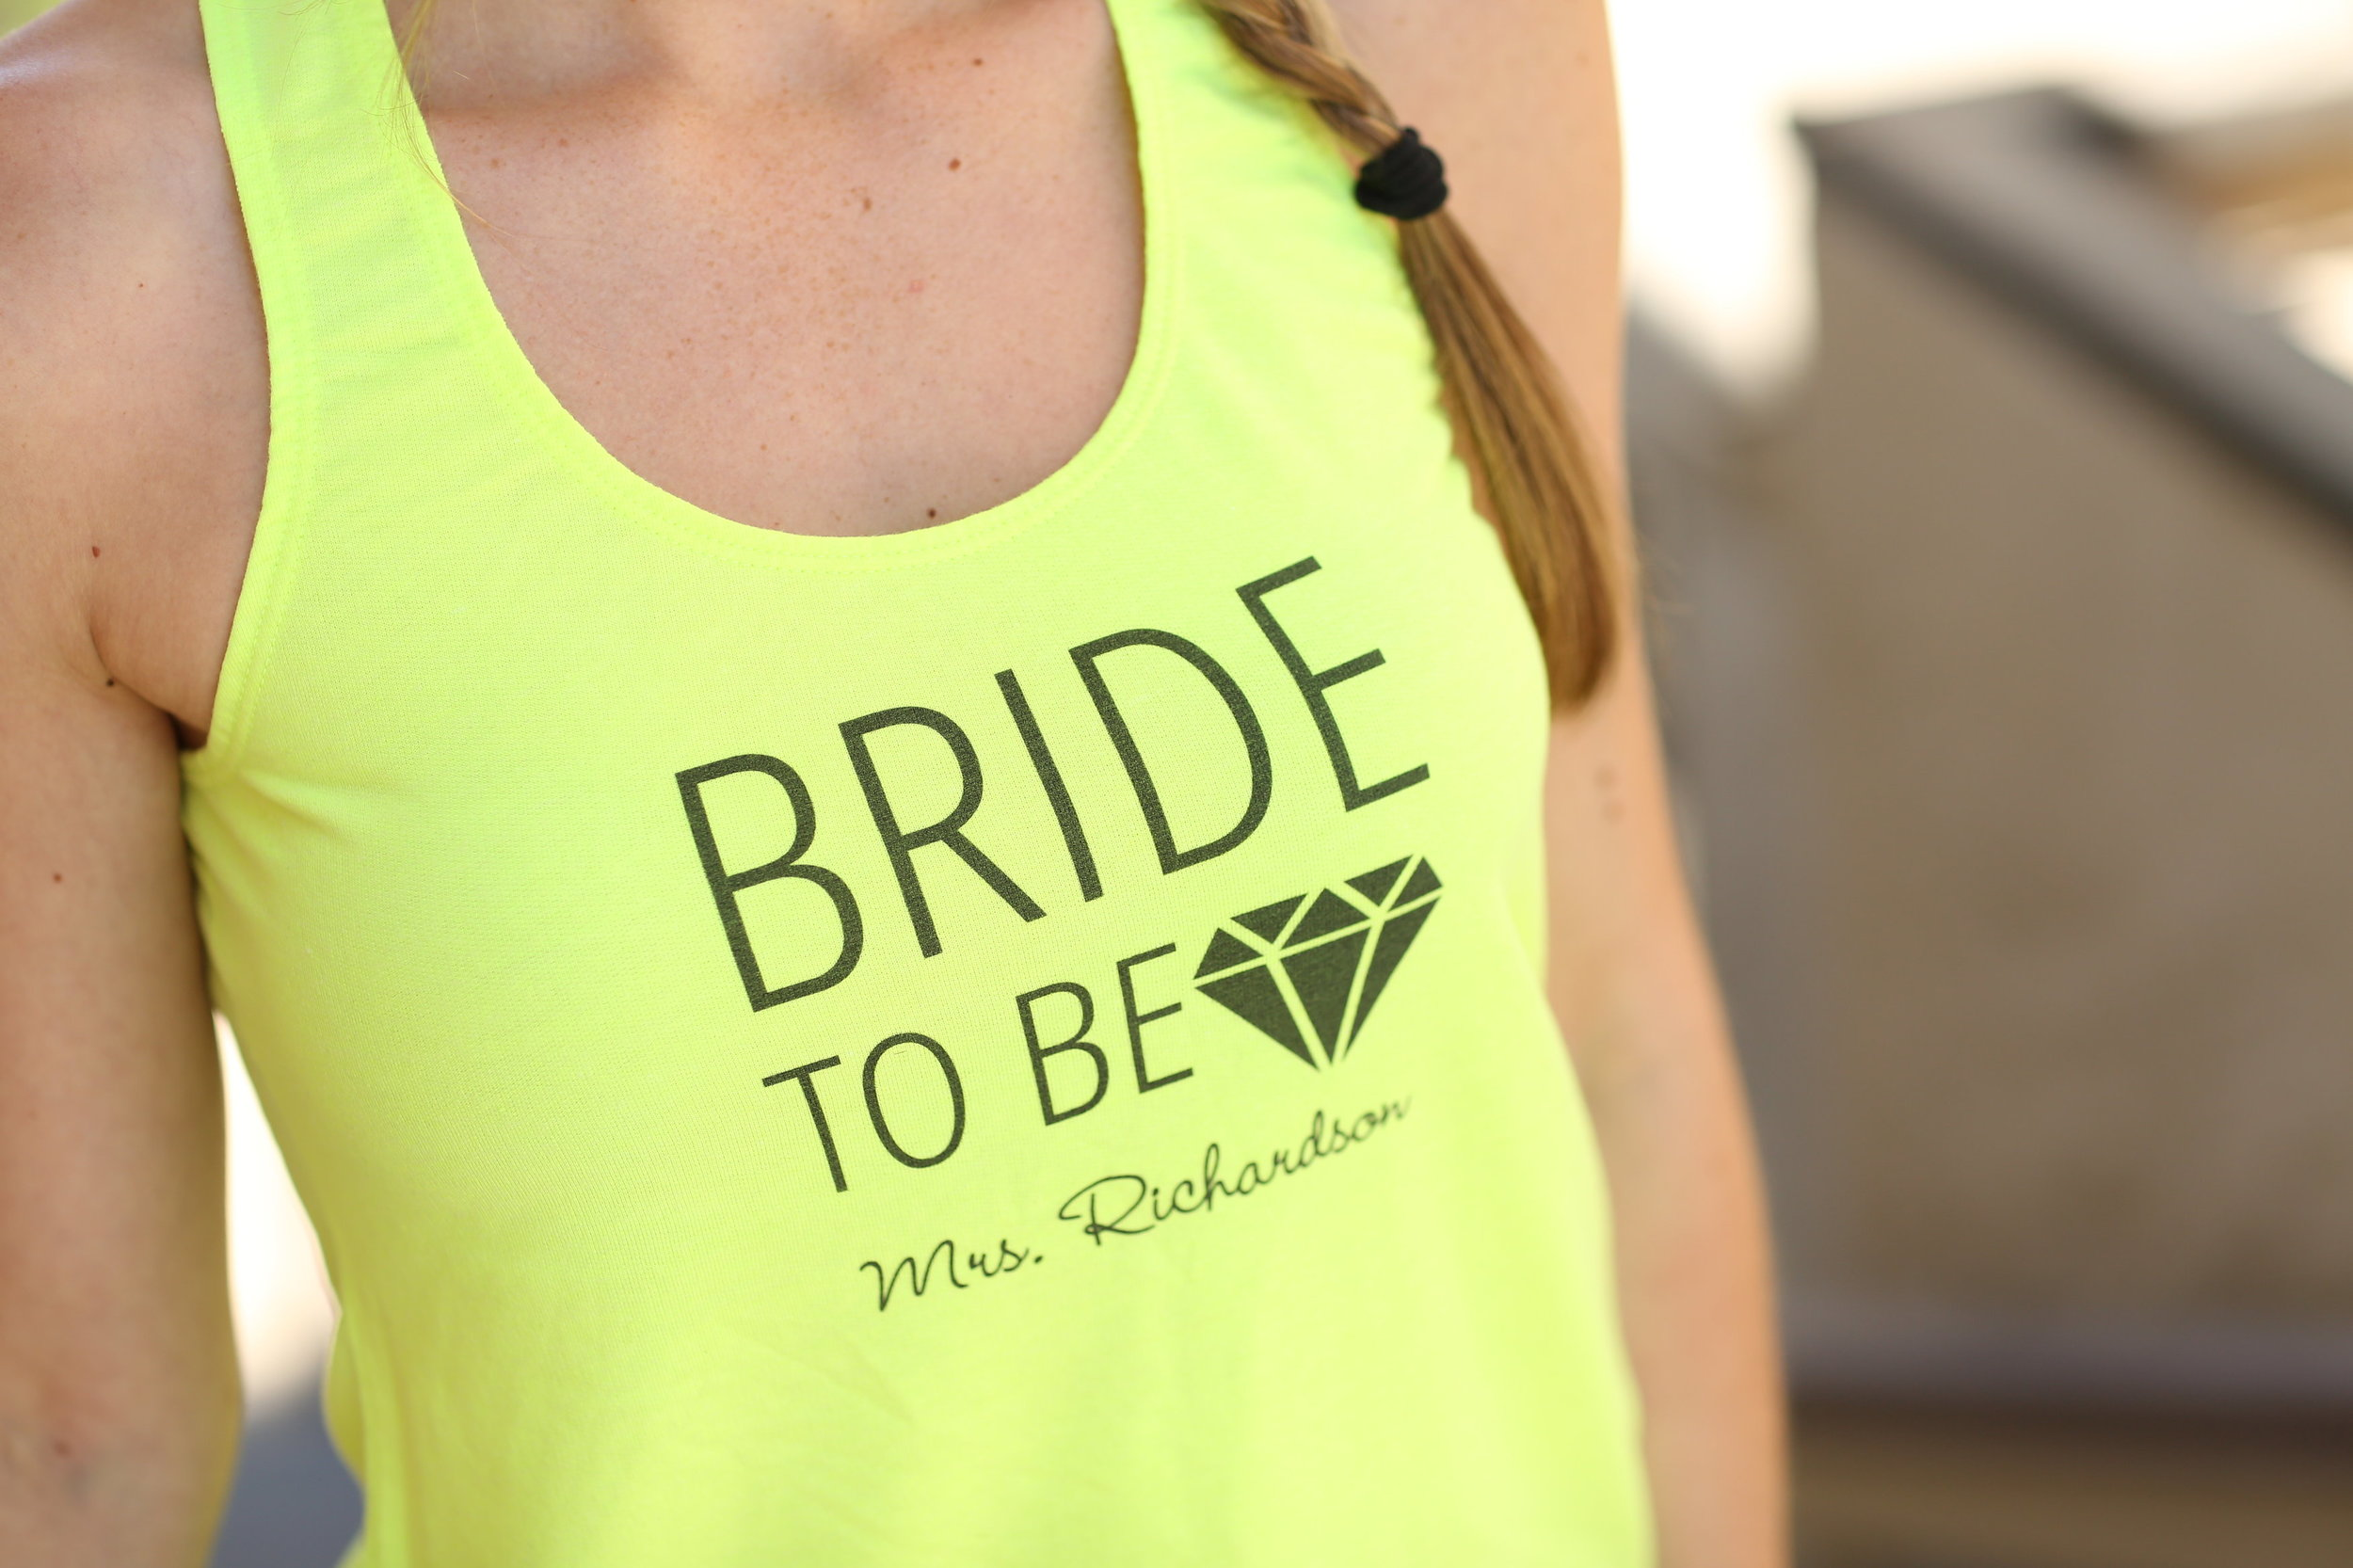 Bride to be Tank by Bridal Party Tees // The Overwhelmed Bride Wedding Blog + Southern California Wedding Planner